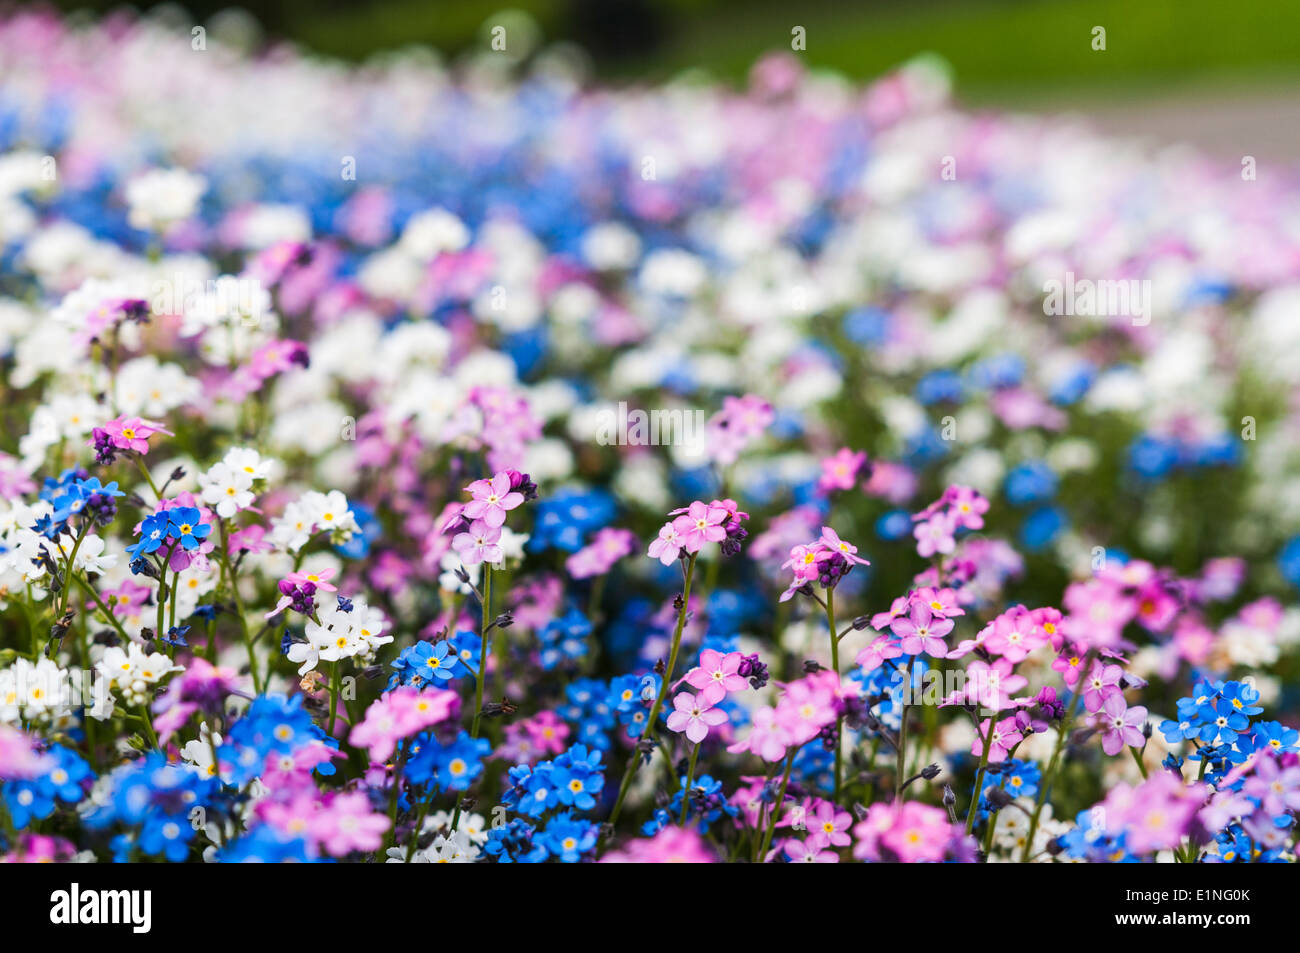 Pink myosotis stock photos pink myosotis stock images alamy white pink and blue forget me not flowers in a park flowerbed stock image mightylinksfo